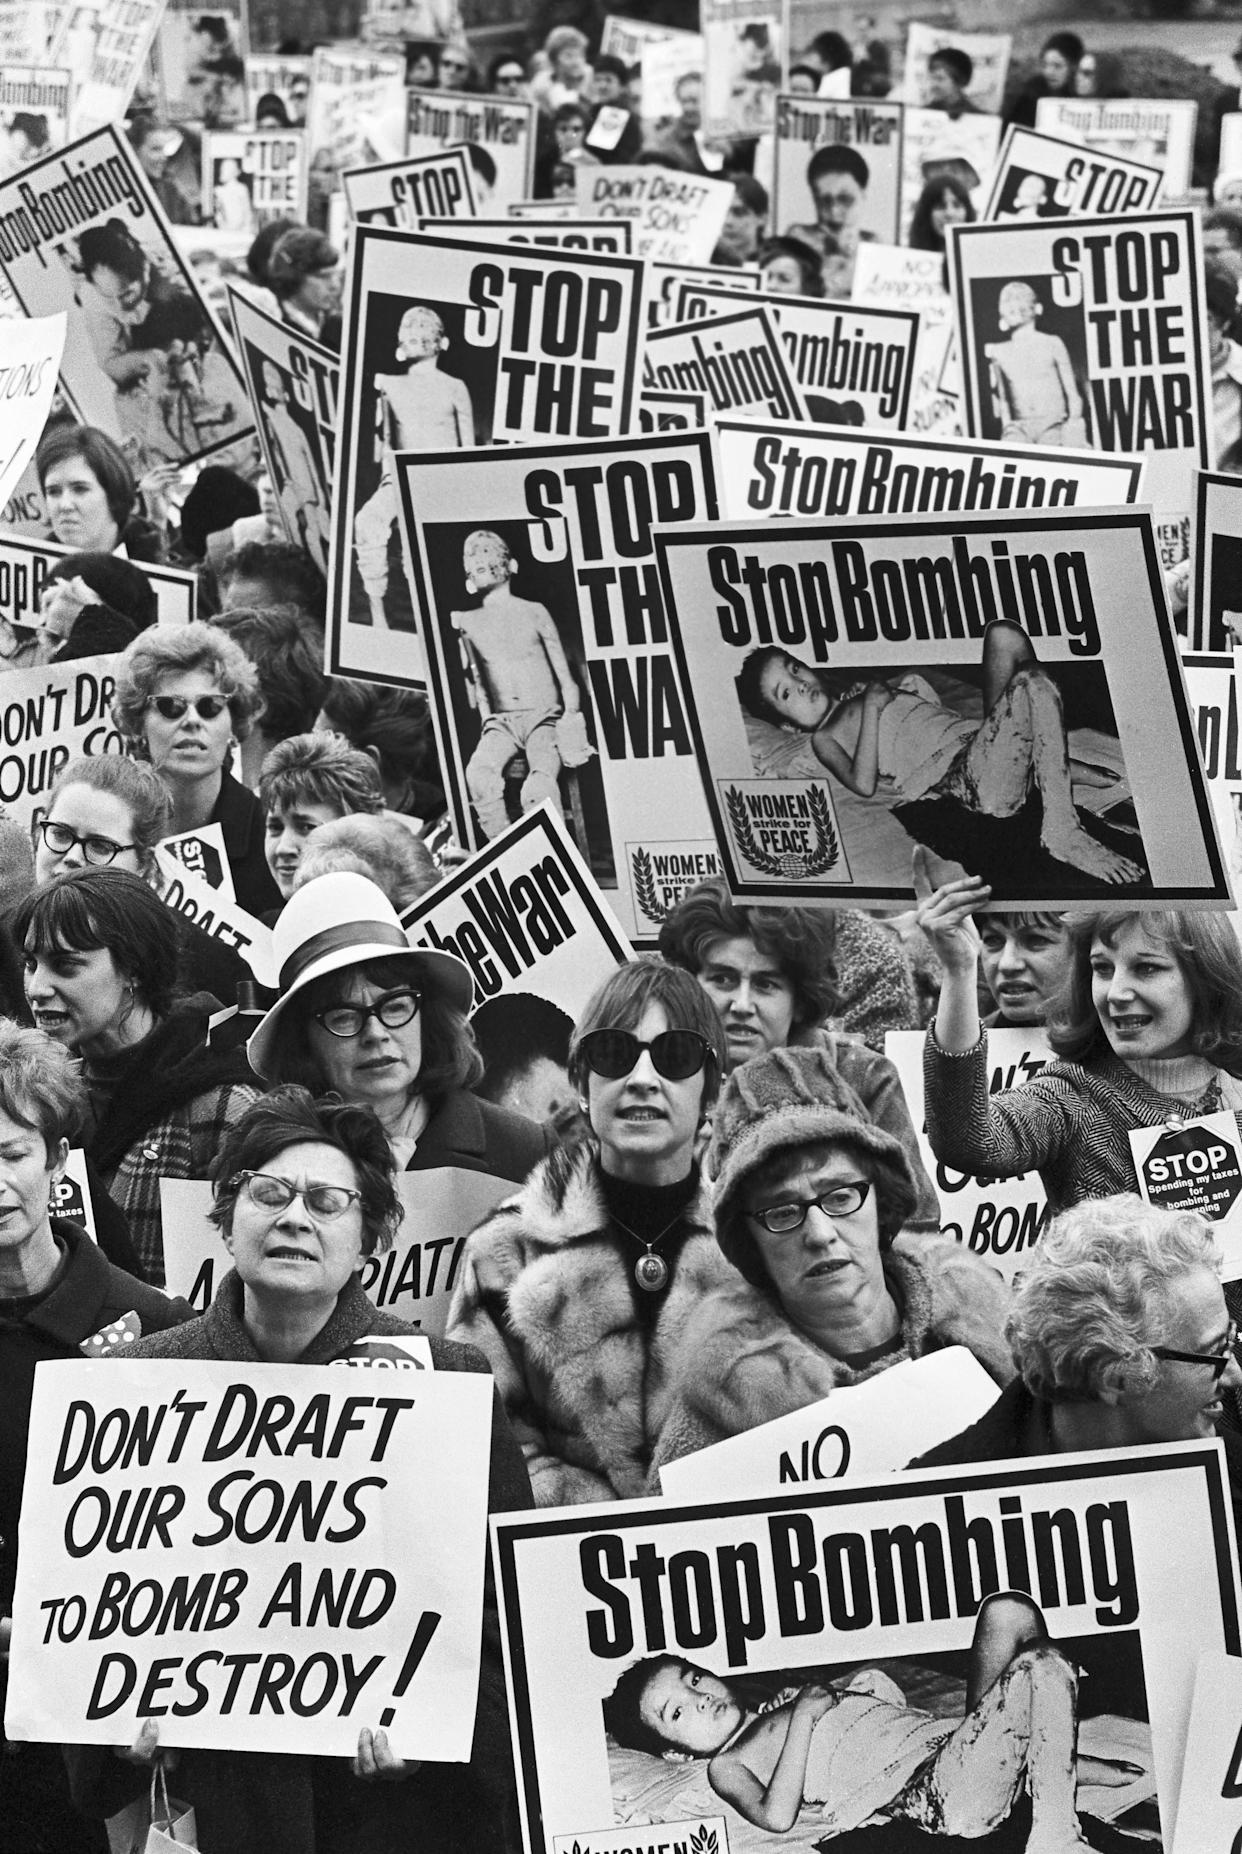 Carrying graphically illustrated anti-Vietnamese war posters, members of the 'Women's Strike for Peace' push their way to the doors of the Pentagon Building on Feb. 16, 1967. The main doors of the building were locked for 30 minutes, as the women stormed the doors in an effort to gain entrance. This photo is a close-up of the group.